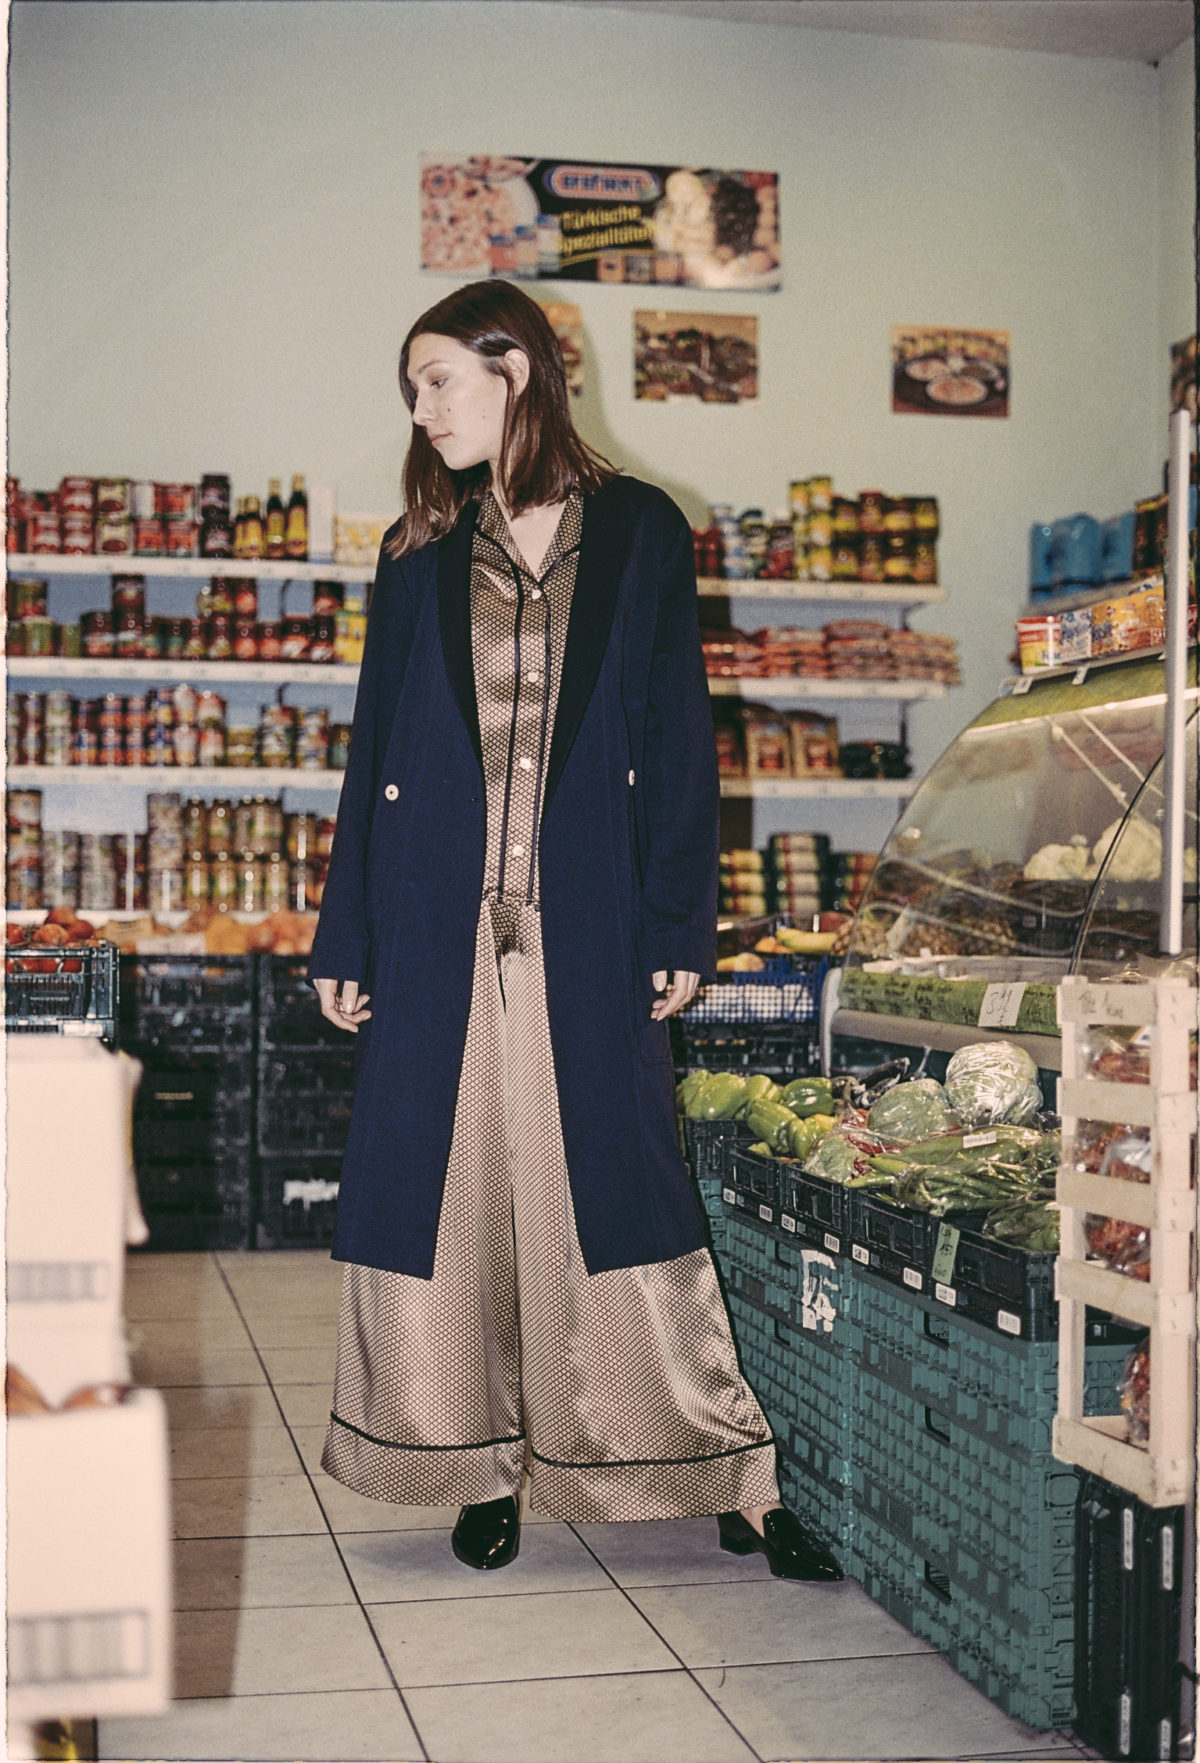 THE BERLIN LABEL MUUN BRINGING NONCHALANCE BACK TO OUR CLOSETS